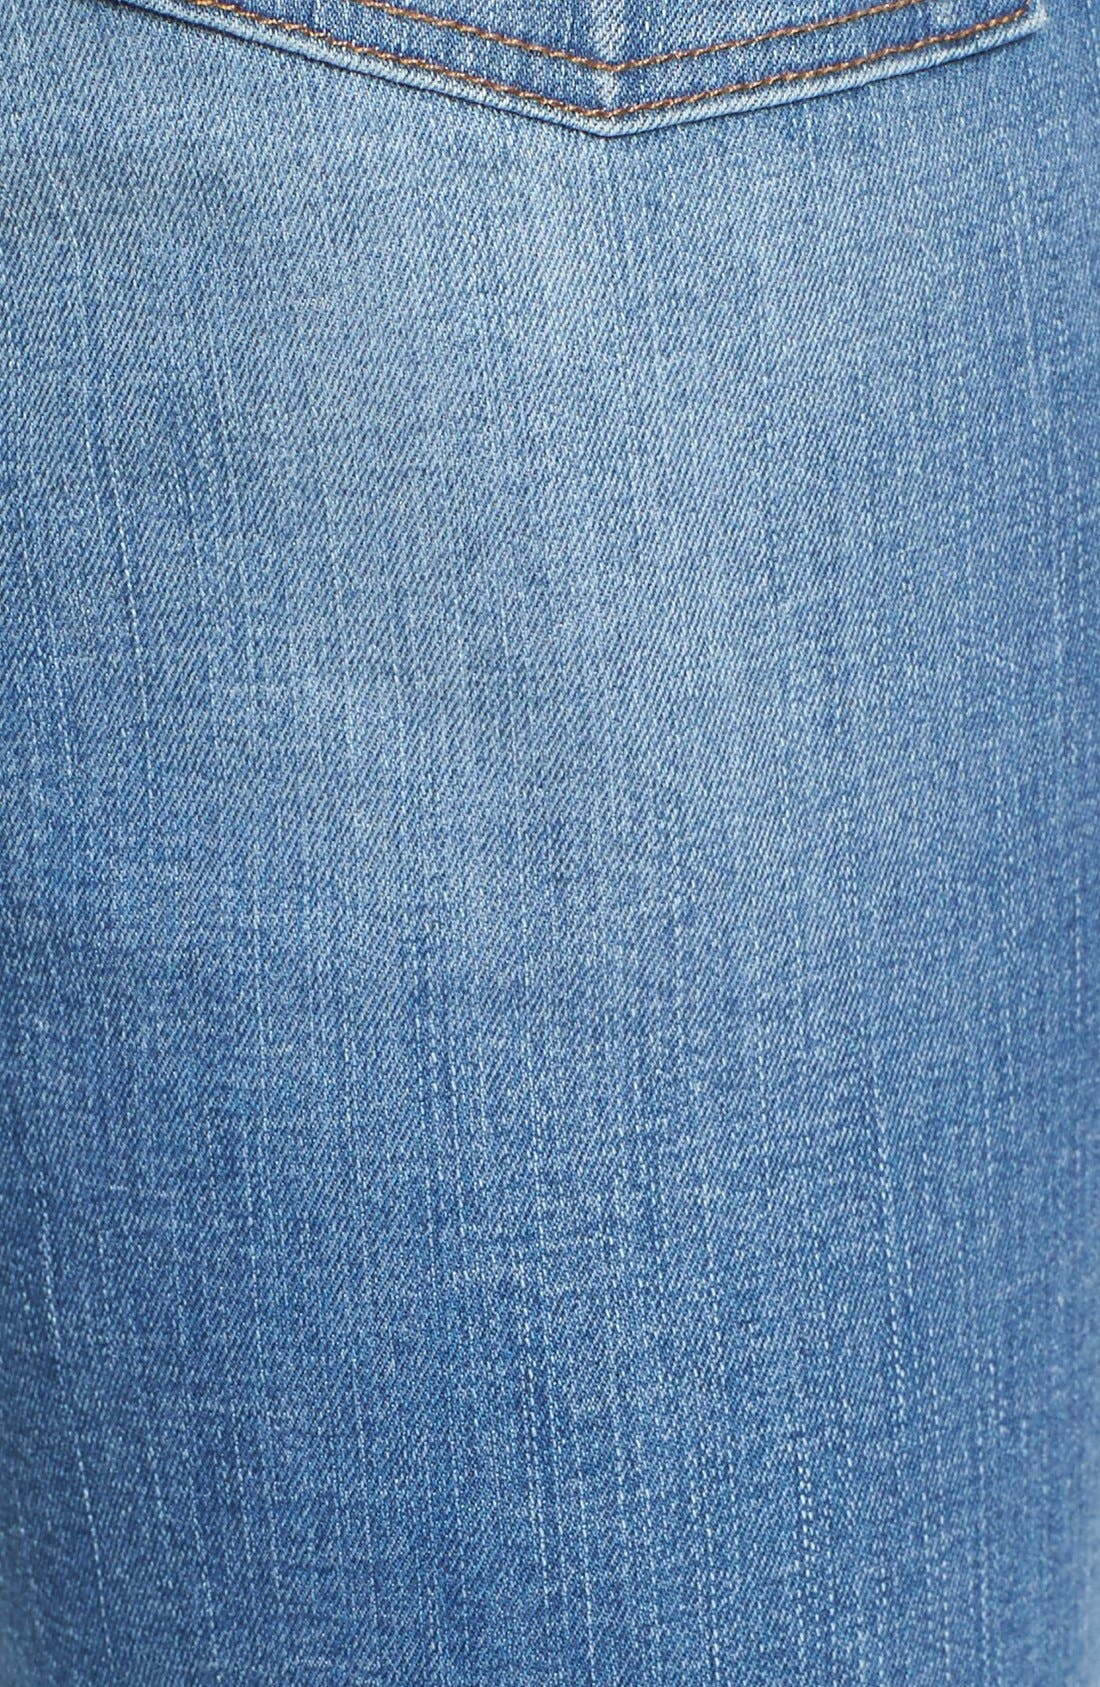 Alternate Image 6  - Madewell 'High Riser - Button Through' Crop Skinny Skinny Jeans (Kearney Wash)